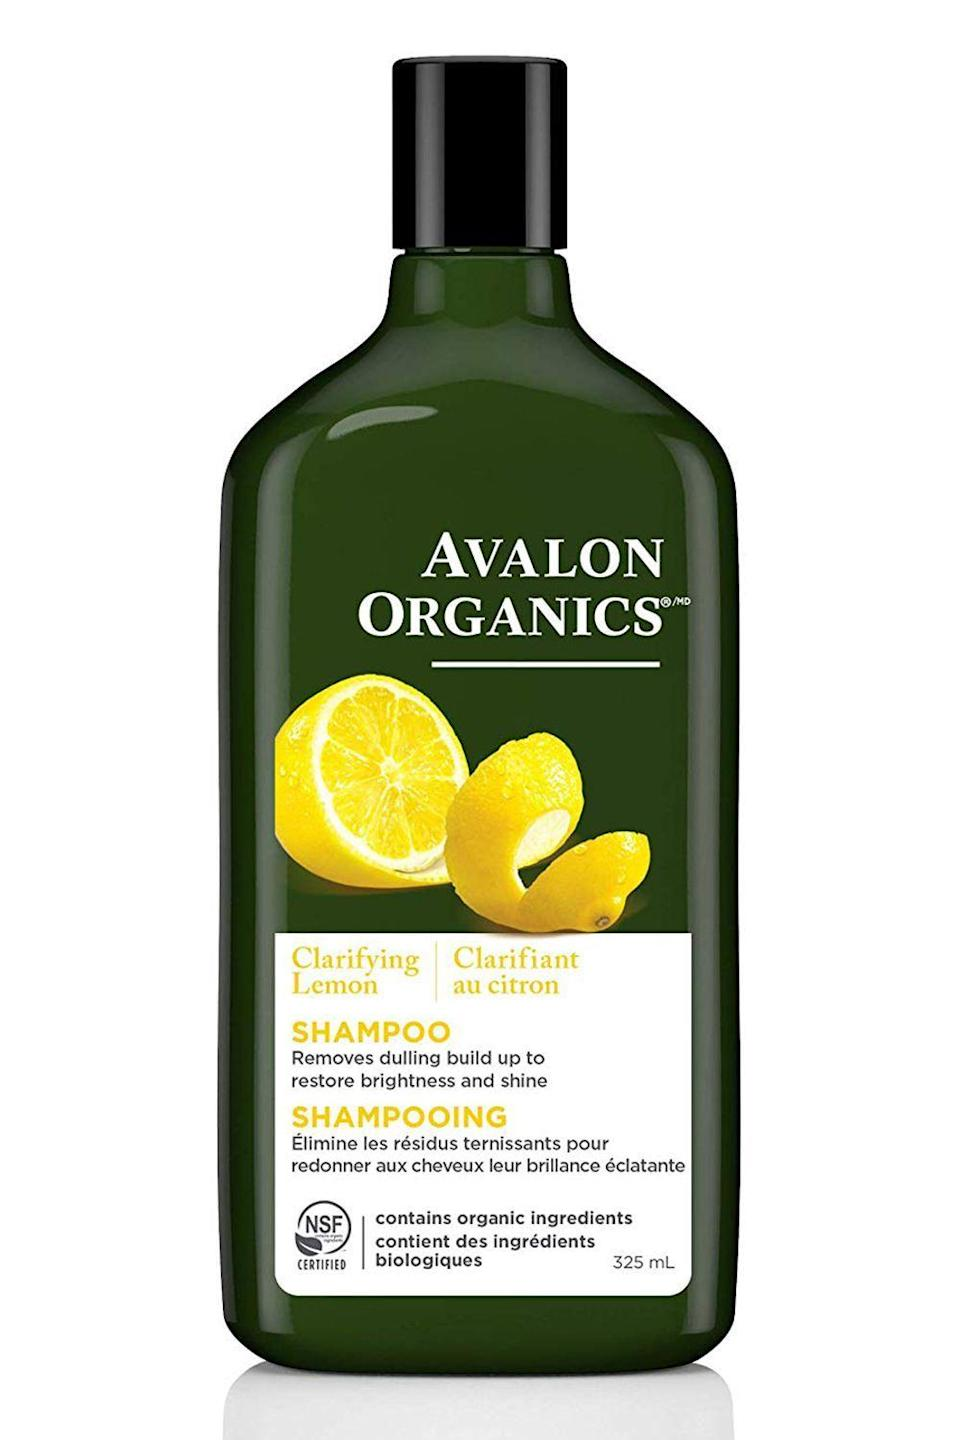 """<p><strong>Avalon Organics</strong></p><p>amazon.com</p><p><strong>$7.16</strong></p><p><a href=""""https://www.amazon.com/dp/B00C0THEEE?tag=syn-yahoo-20&ascsubtag=%5Bartid%7C10049.g.20716291%5Bsrc%7Cyahoo-us"""" rel=""""nofollow noopener"""" target=""""_blank"""" data-ylk=""""slk:Shop Now"""" class=""""link rapid-noclick-resp"""">Shop Now</a></p><p>Made with all-natural ingredients like lemon oil, aloe, and vitamin E, this <a href=""""https://www.cosmopolitan.com/style-beauty/beauty/g22740377/organic-shampoo/"""" rel=""""nofollow noopener"""" target=""""_blank"""" data-ylk=""""slk:organic shampoo"""" class=""""link rapid-noclick-resp"""">organic shampoo</a> is <a href=""""https://www.ewg.org/"""" rel=""""nofollow noopener"""" target=""""_blank"""" data-ylk=""""slk:EWG-certified"""" class=""""link rapid-noclick-resp"""">EWG-certified</a> and ideal for anyone wants to remove product build-up and <strong>green-ify their curl routine</strong> in the process.</p>"""